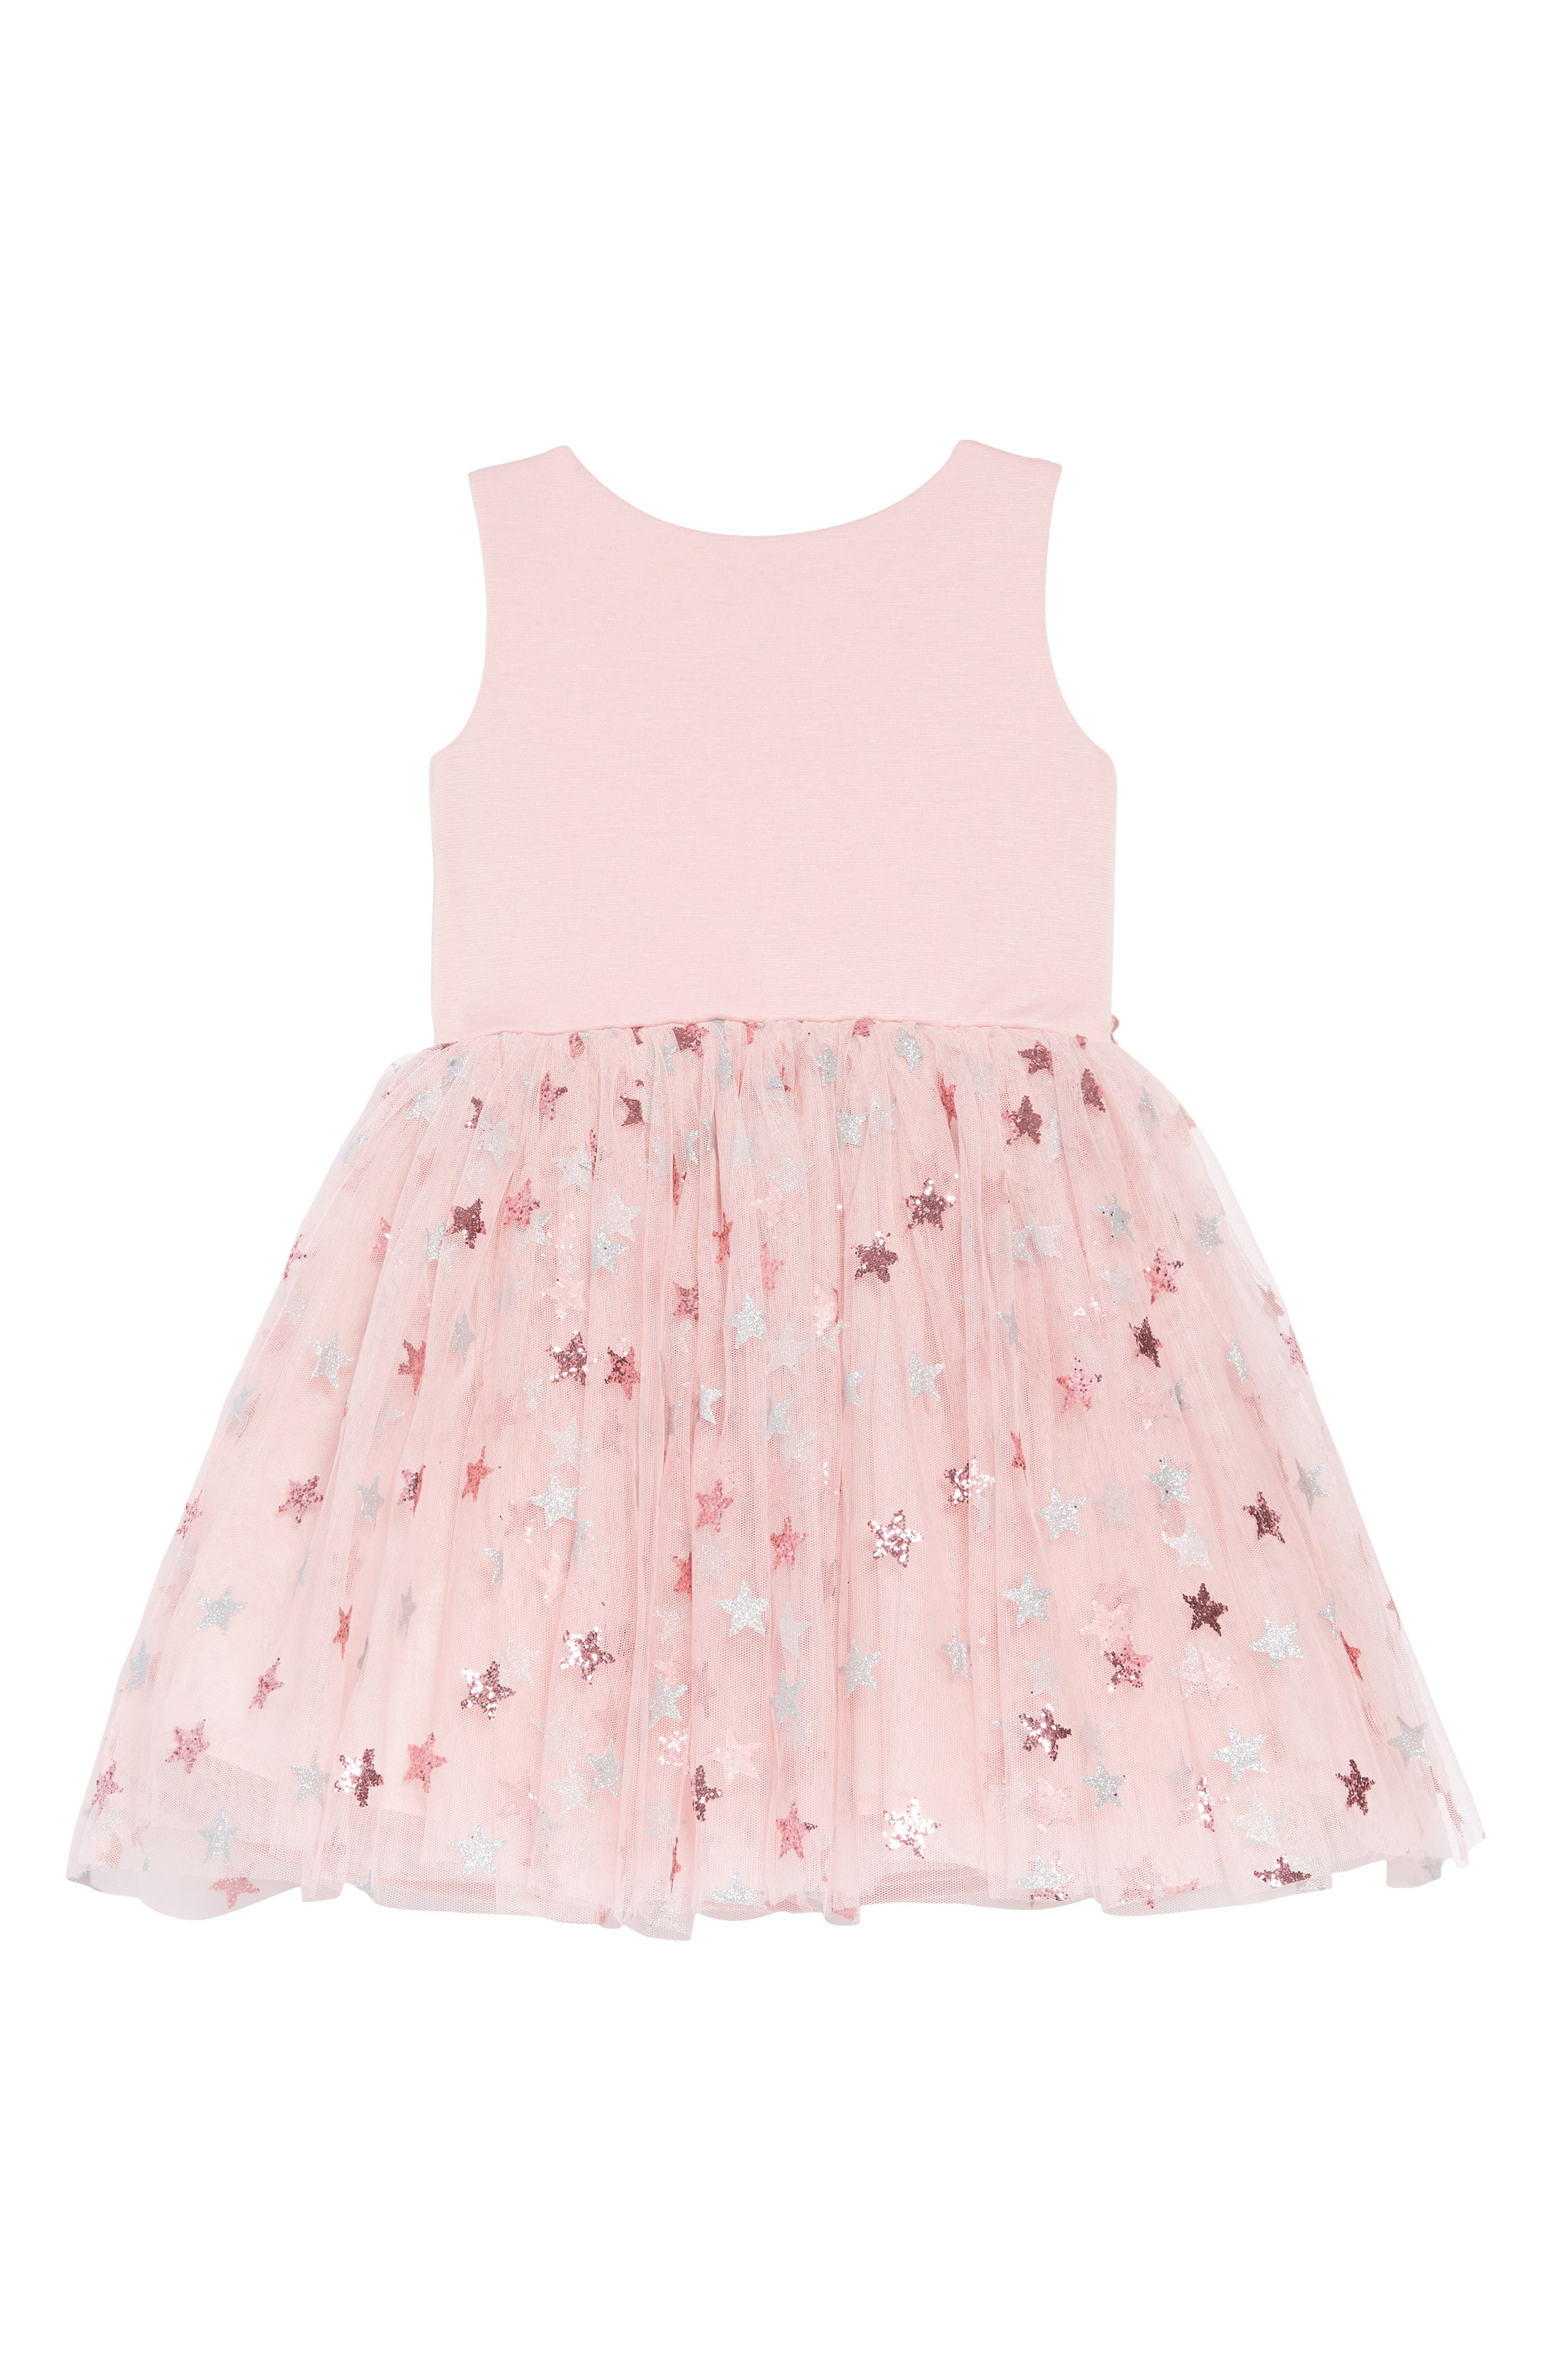 ZUNIE, Glitter Star Ponte & Tulle Dress, Alternate thumbnail 2, color, MAUVE/ SILVER